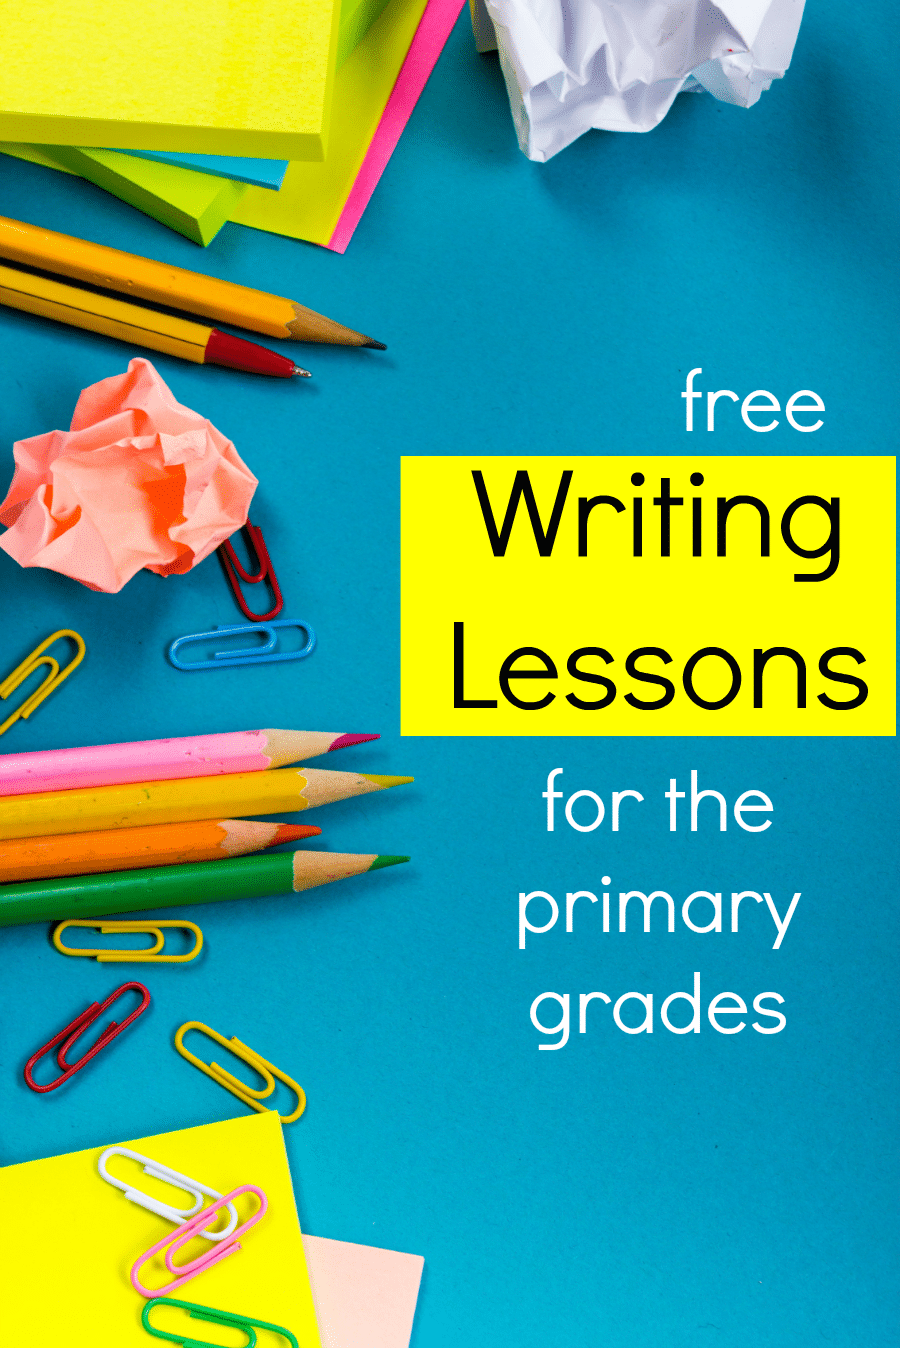 writing for first grade From high-frequency words to full paragraphs with introductions, details, and conclusions, first graders learn how to organize and present their thoughts in writing.